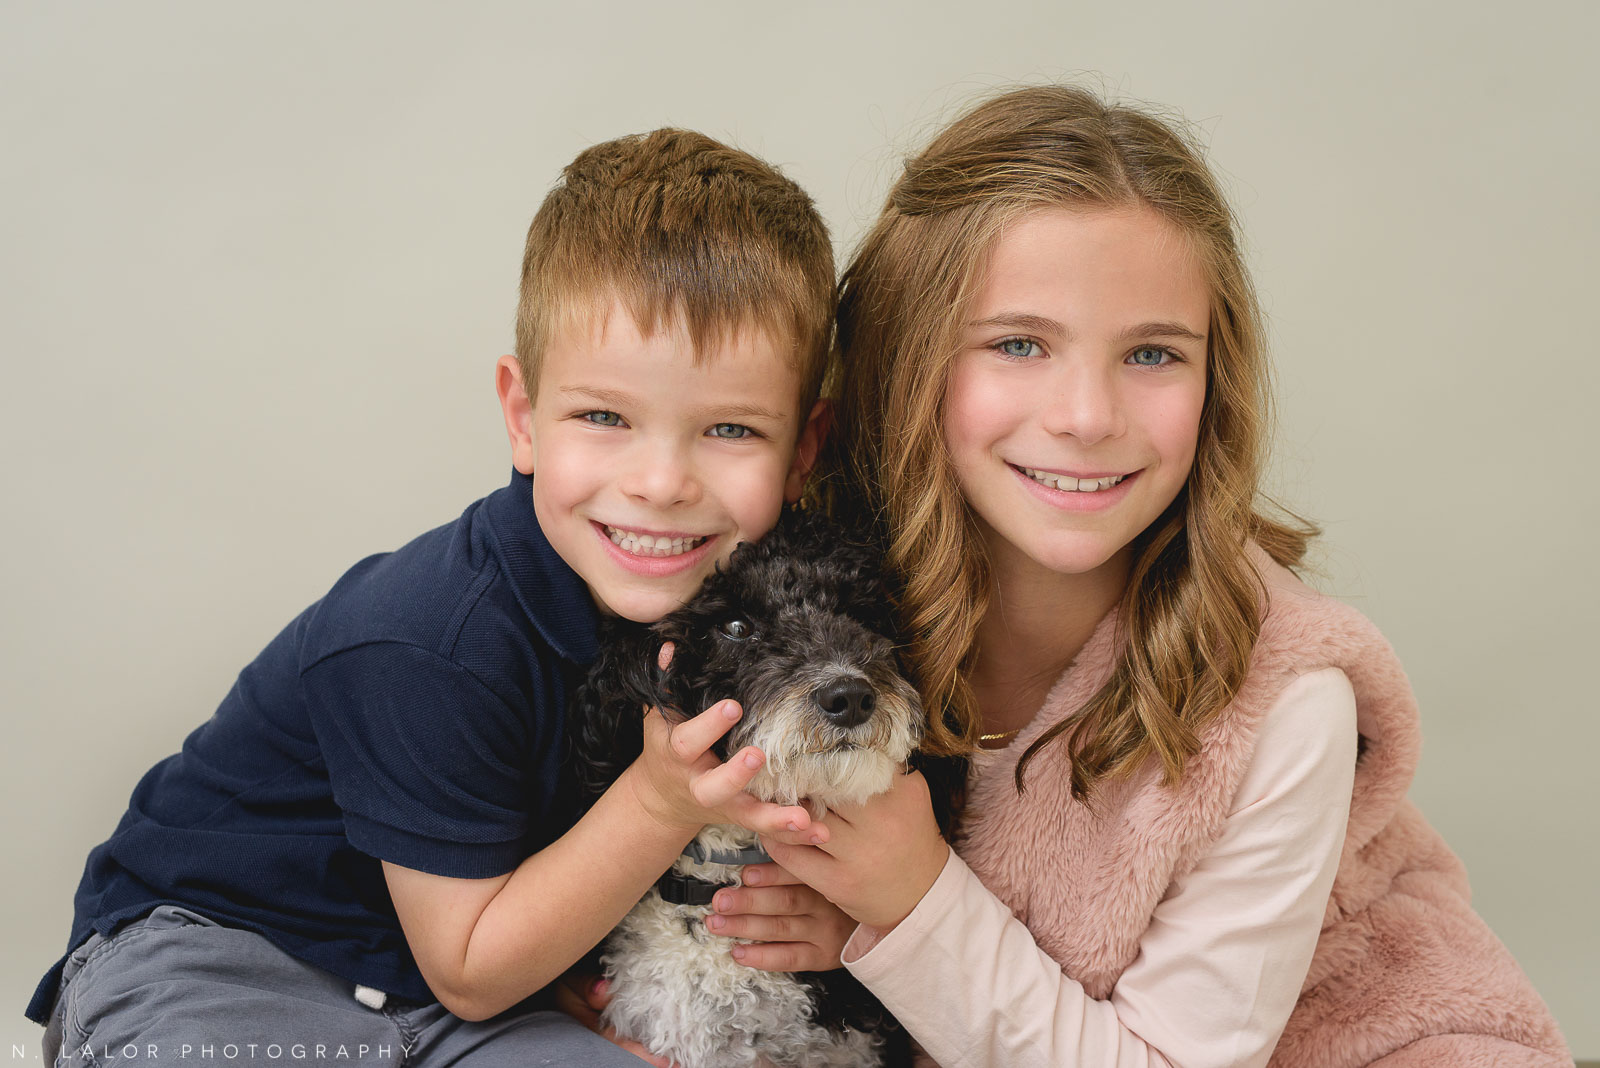 Image of two children with their dog. Portrait by N. Lalor Photography, Studio located in Greenwich Connecticut.